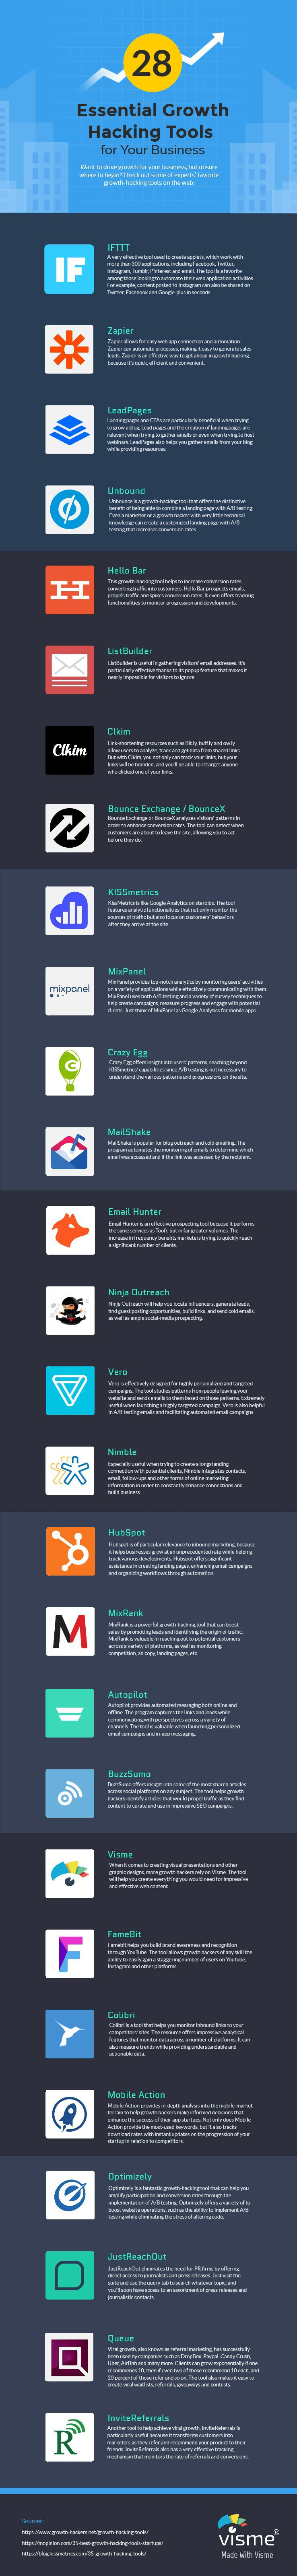 28 herramientas esenciales de Growth Hacking para tu empresa #infografia #marketing